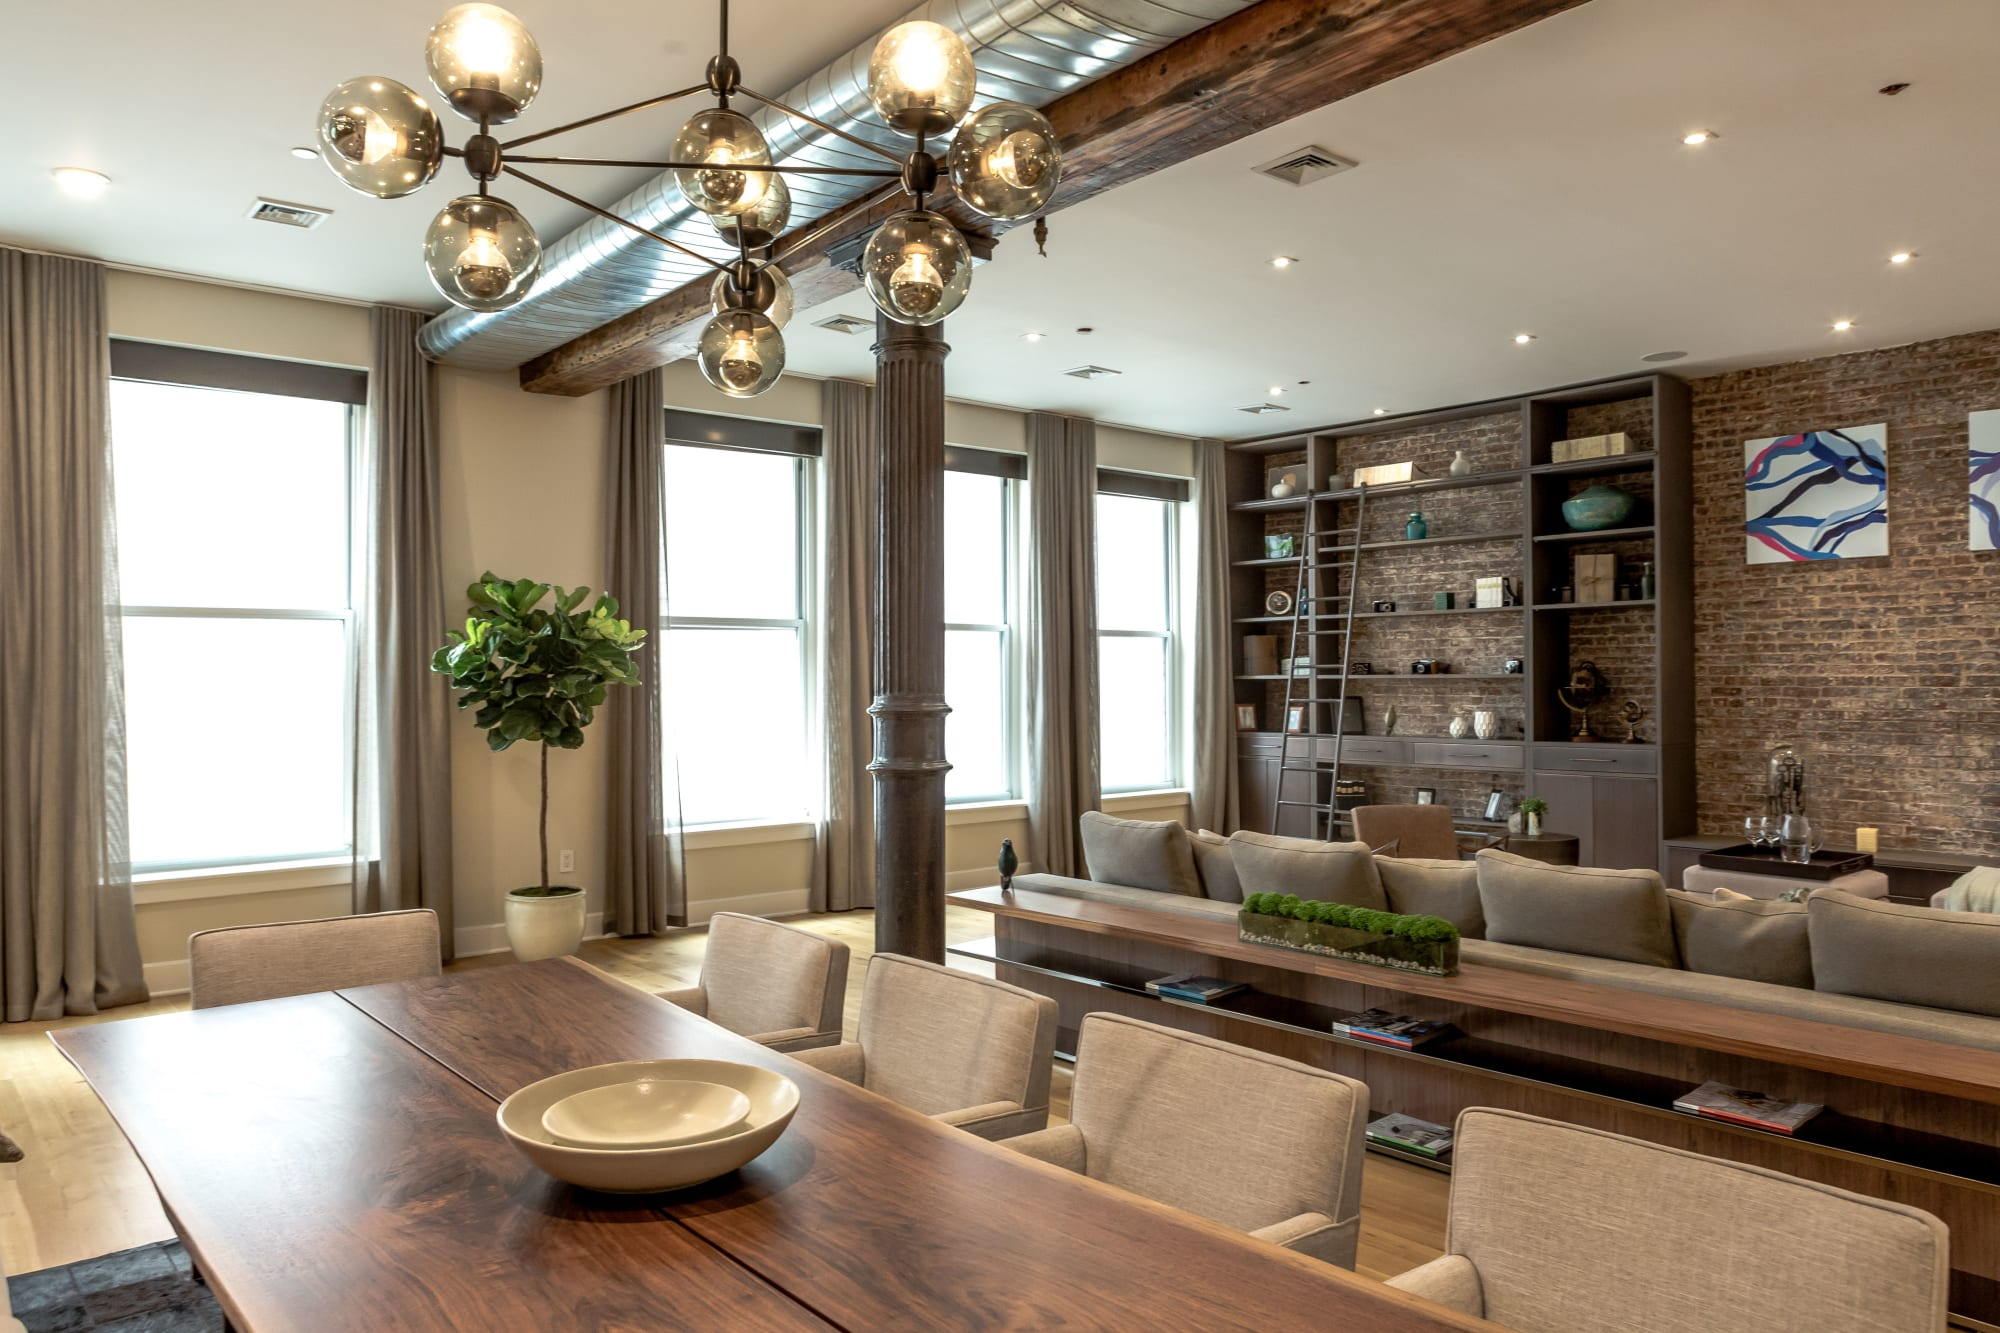 Interior Design by Marie Burgos Design seen at Private Residence - Bachelor Loft Tribeca, New York - New York Bachelor Loft